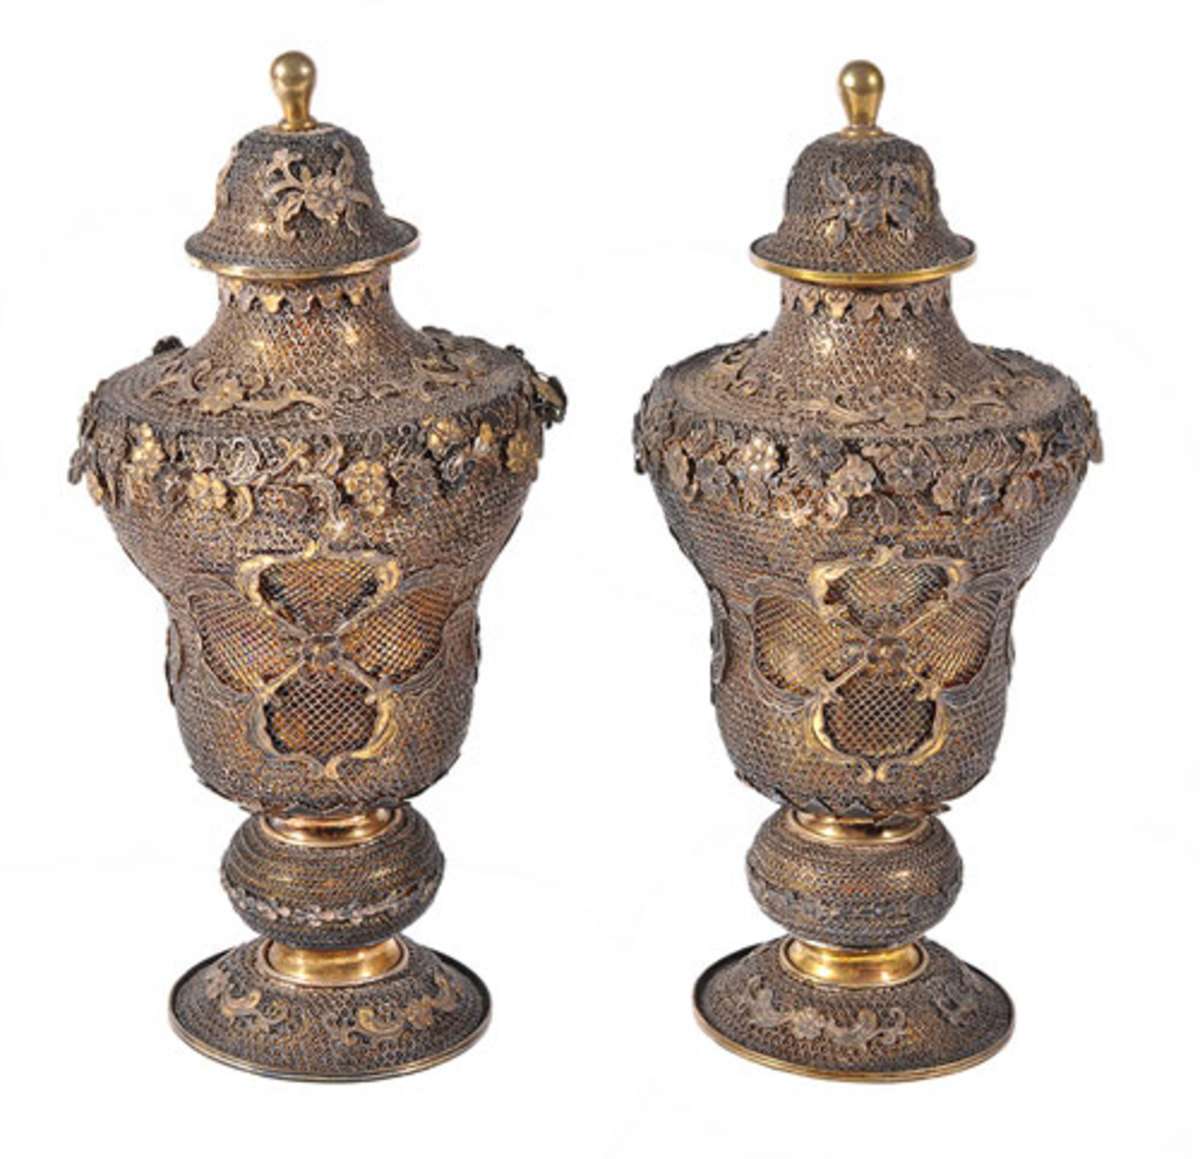 Qianlong Chinese export silver